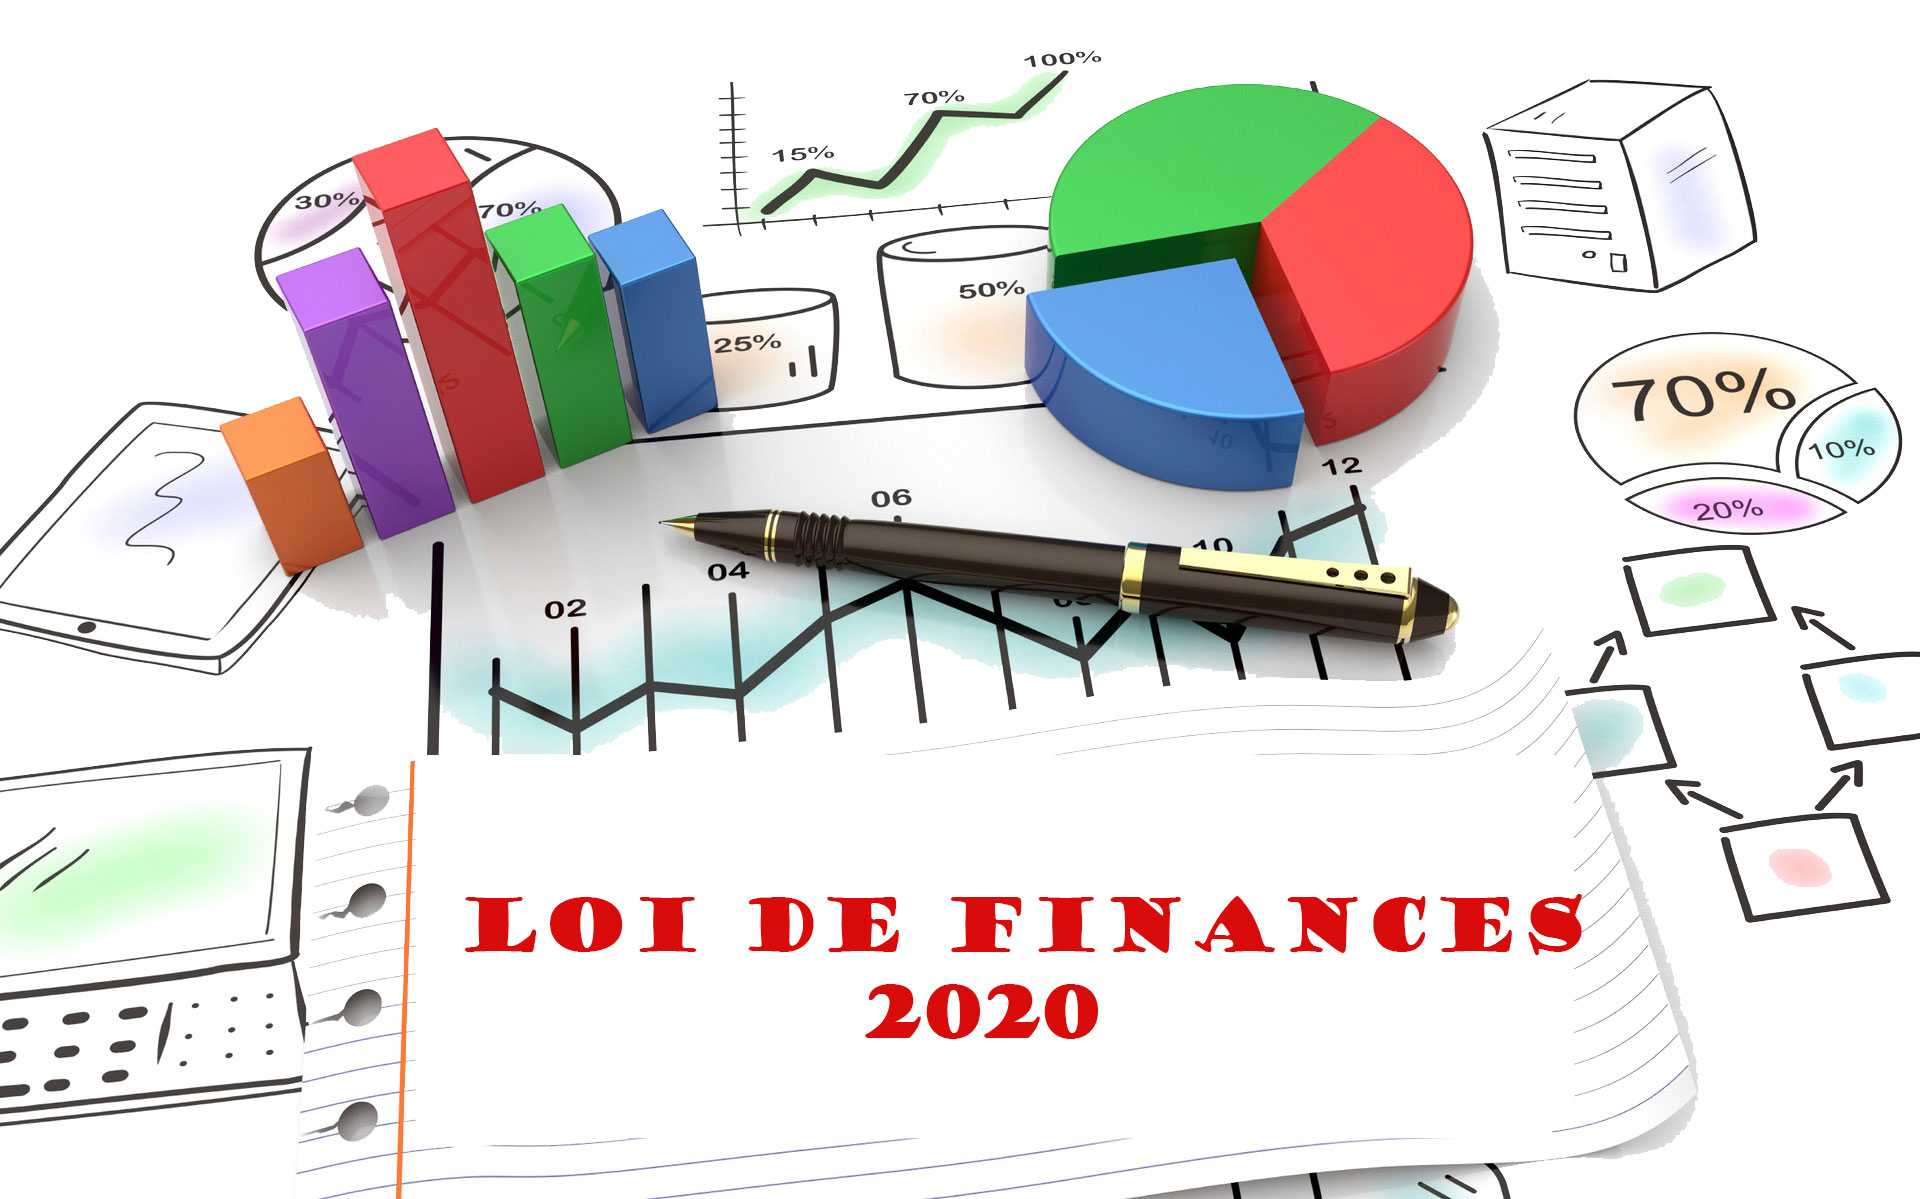 Loi de finances 2020 : le massacre continue !